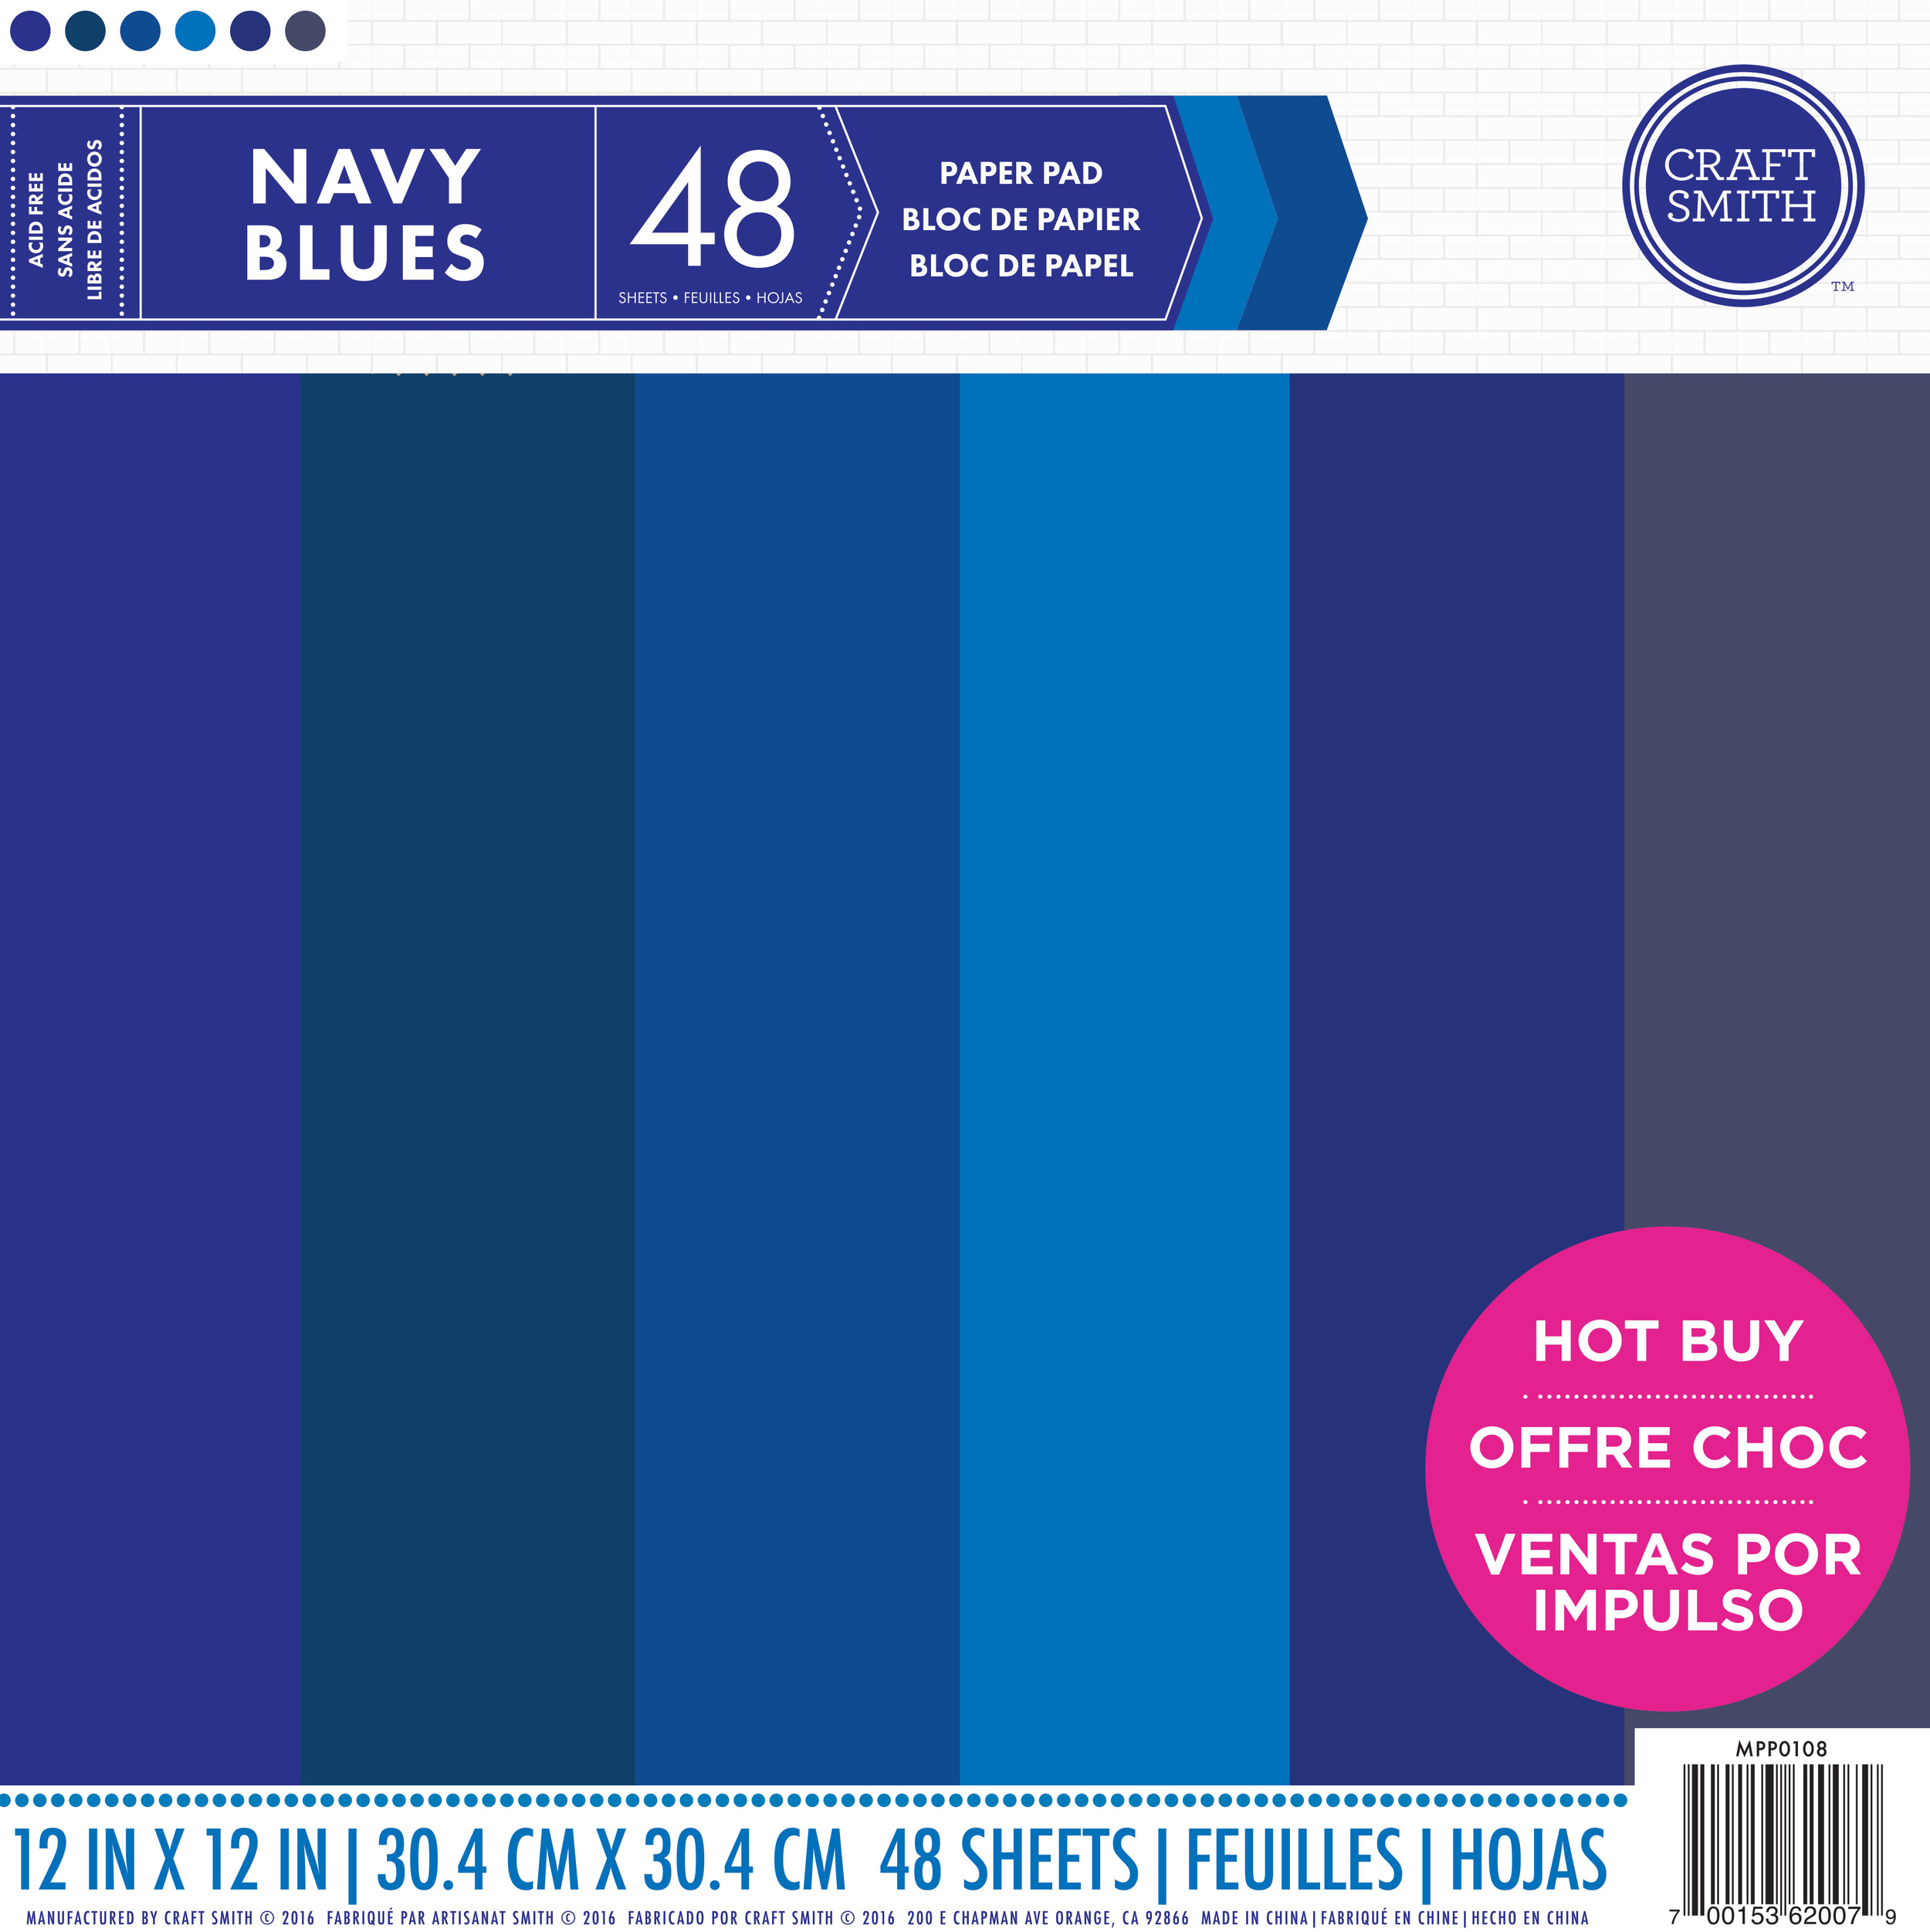 Navy-Blues-Cover_O.jpg